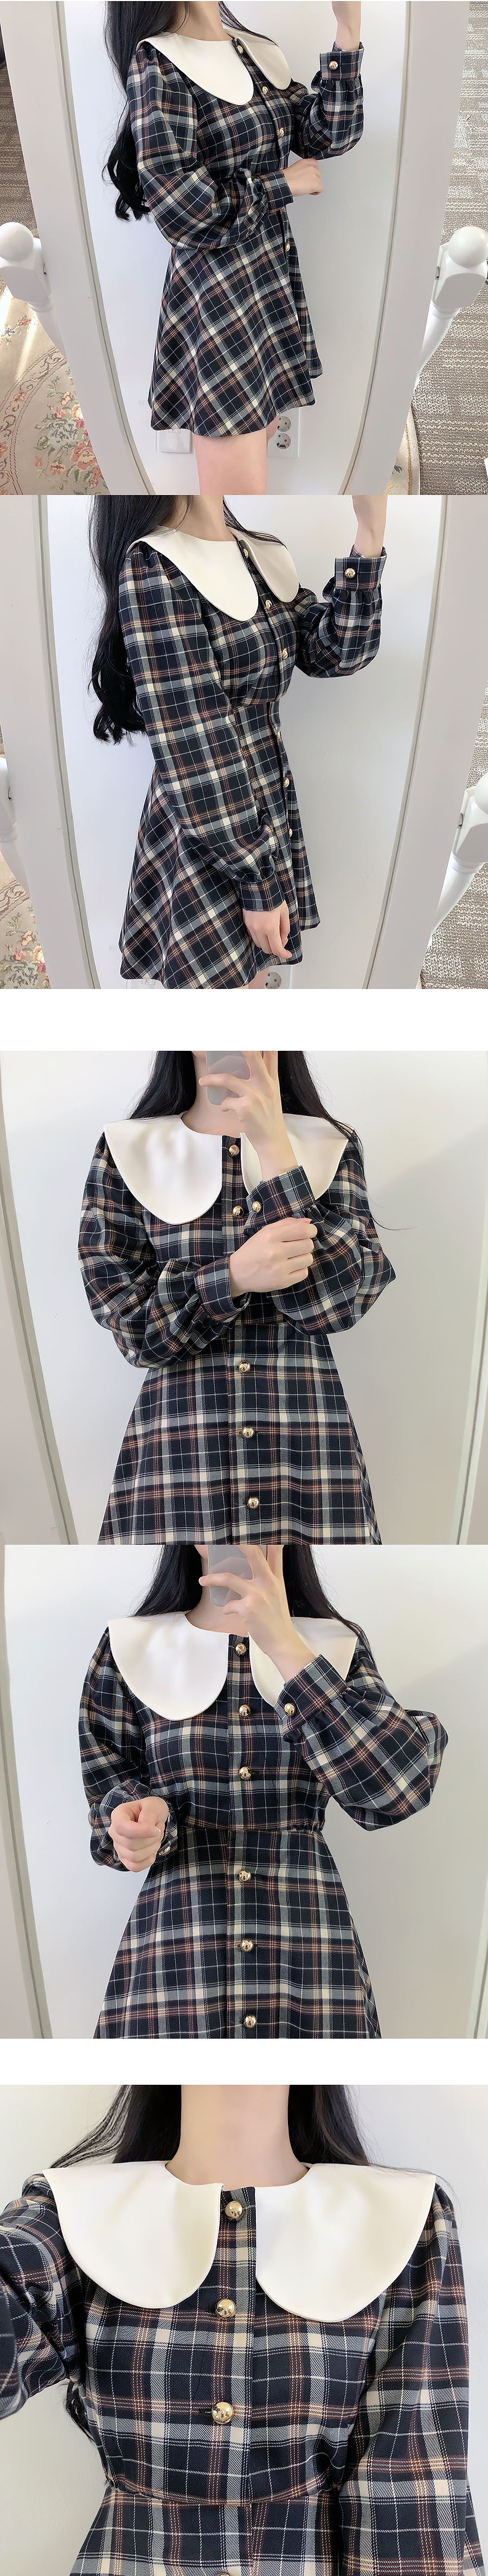 Caroni Round Collar Check Dress